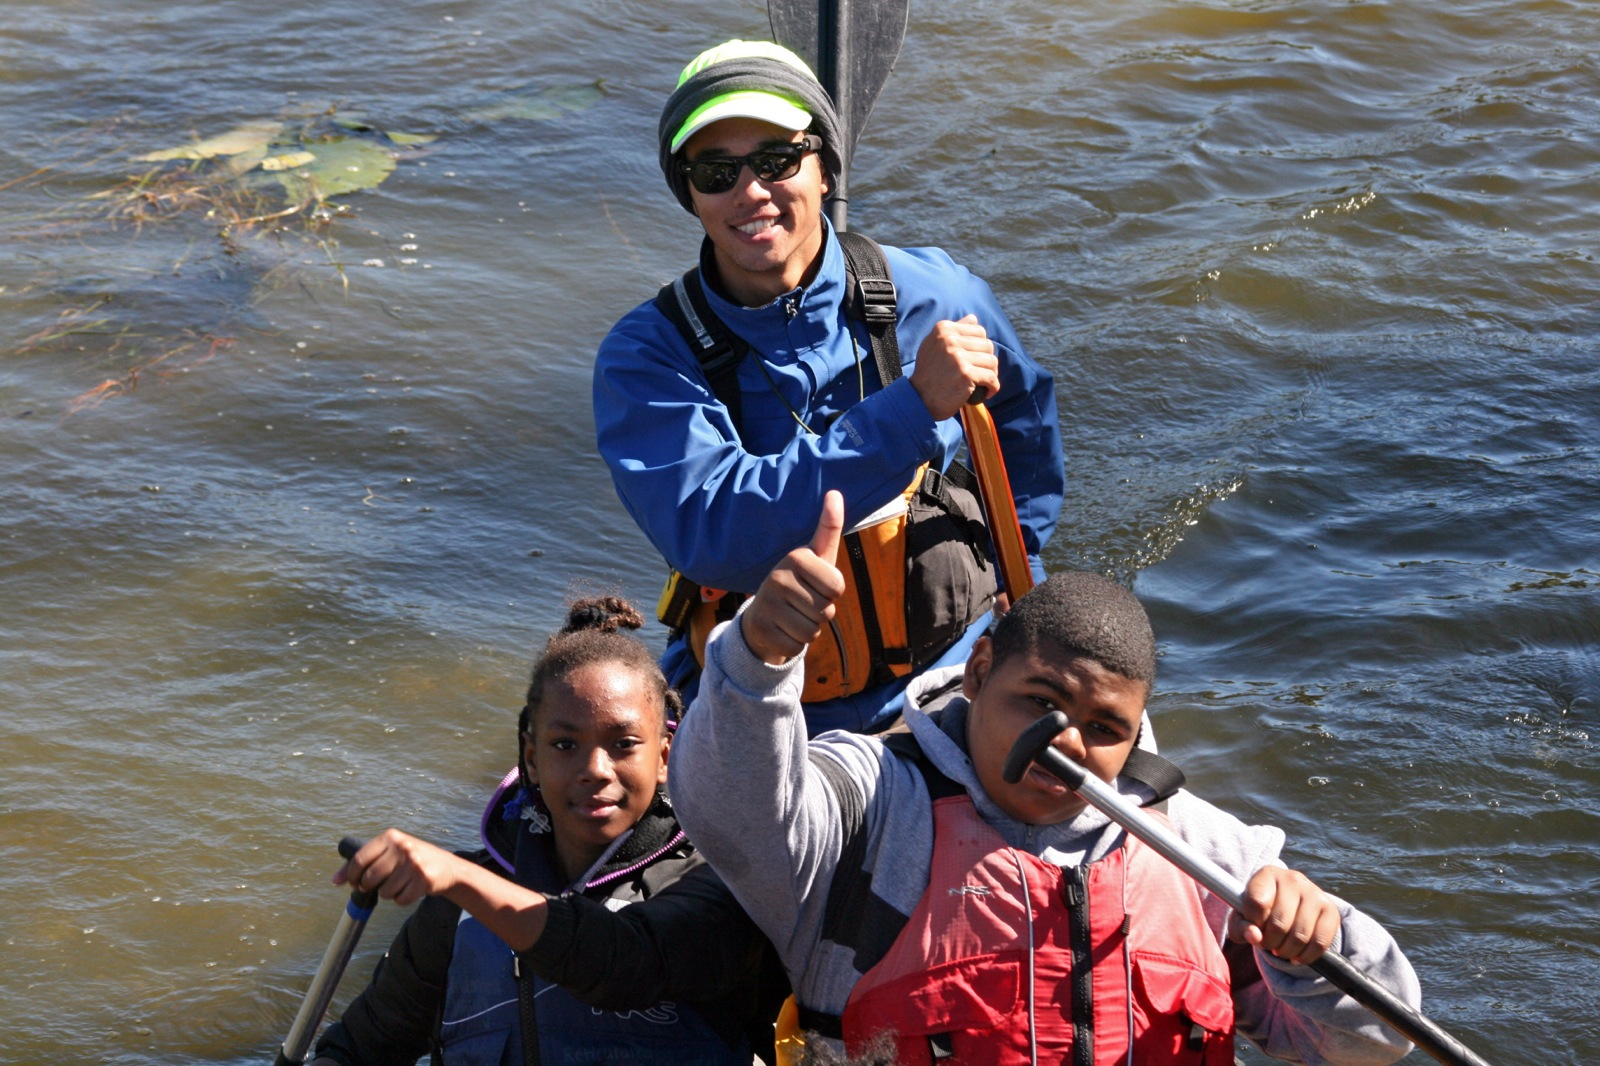 a member of staff and two participants smile for camera while paddling